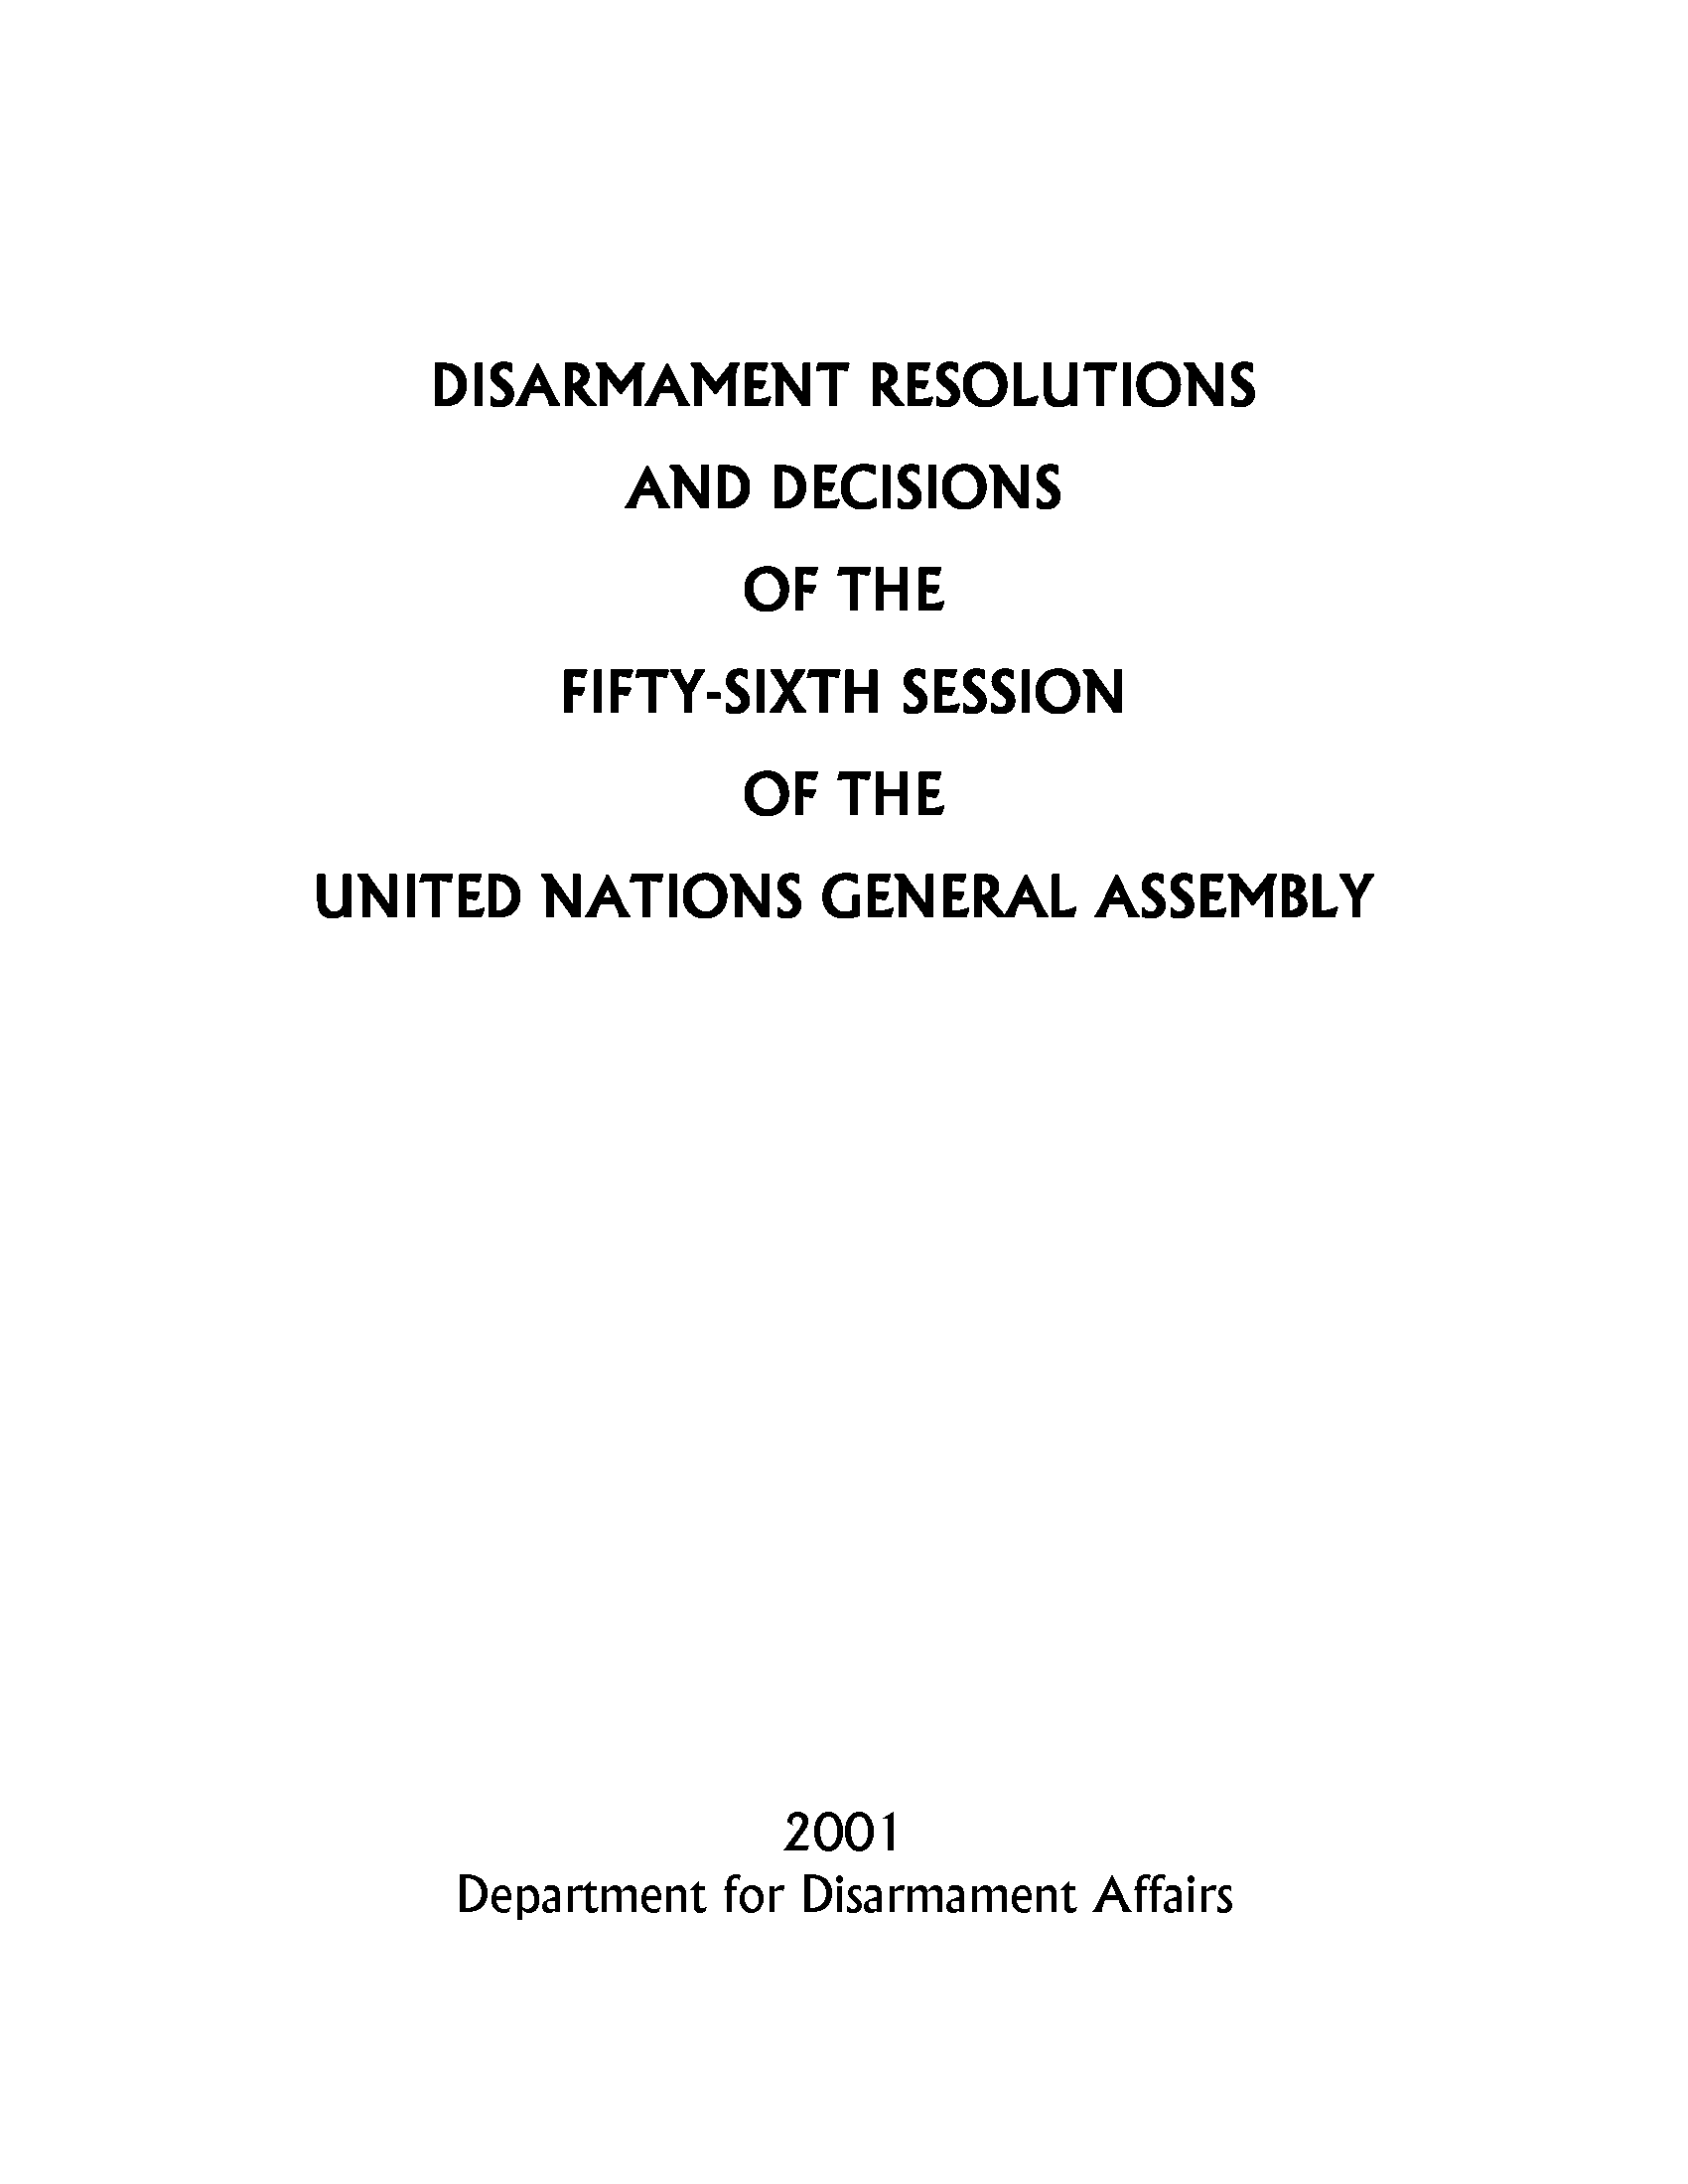 Disarmament Resolutions and Decisions of the Fifty-sixth Session of the United Nations General Assembly, 2001